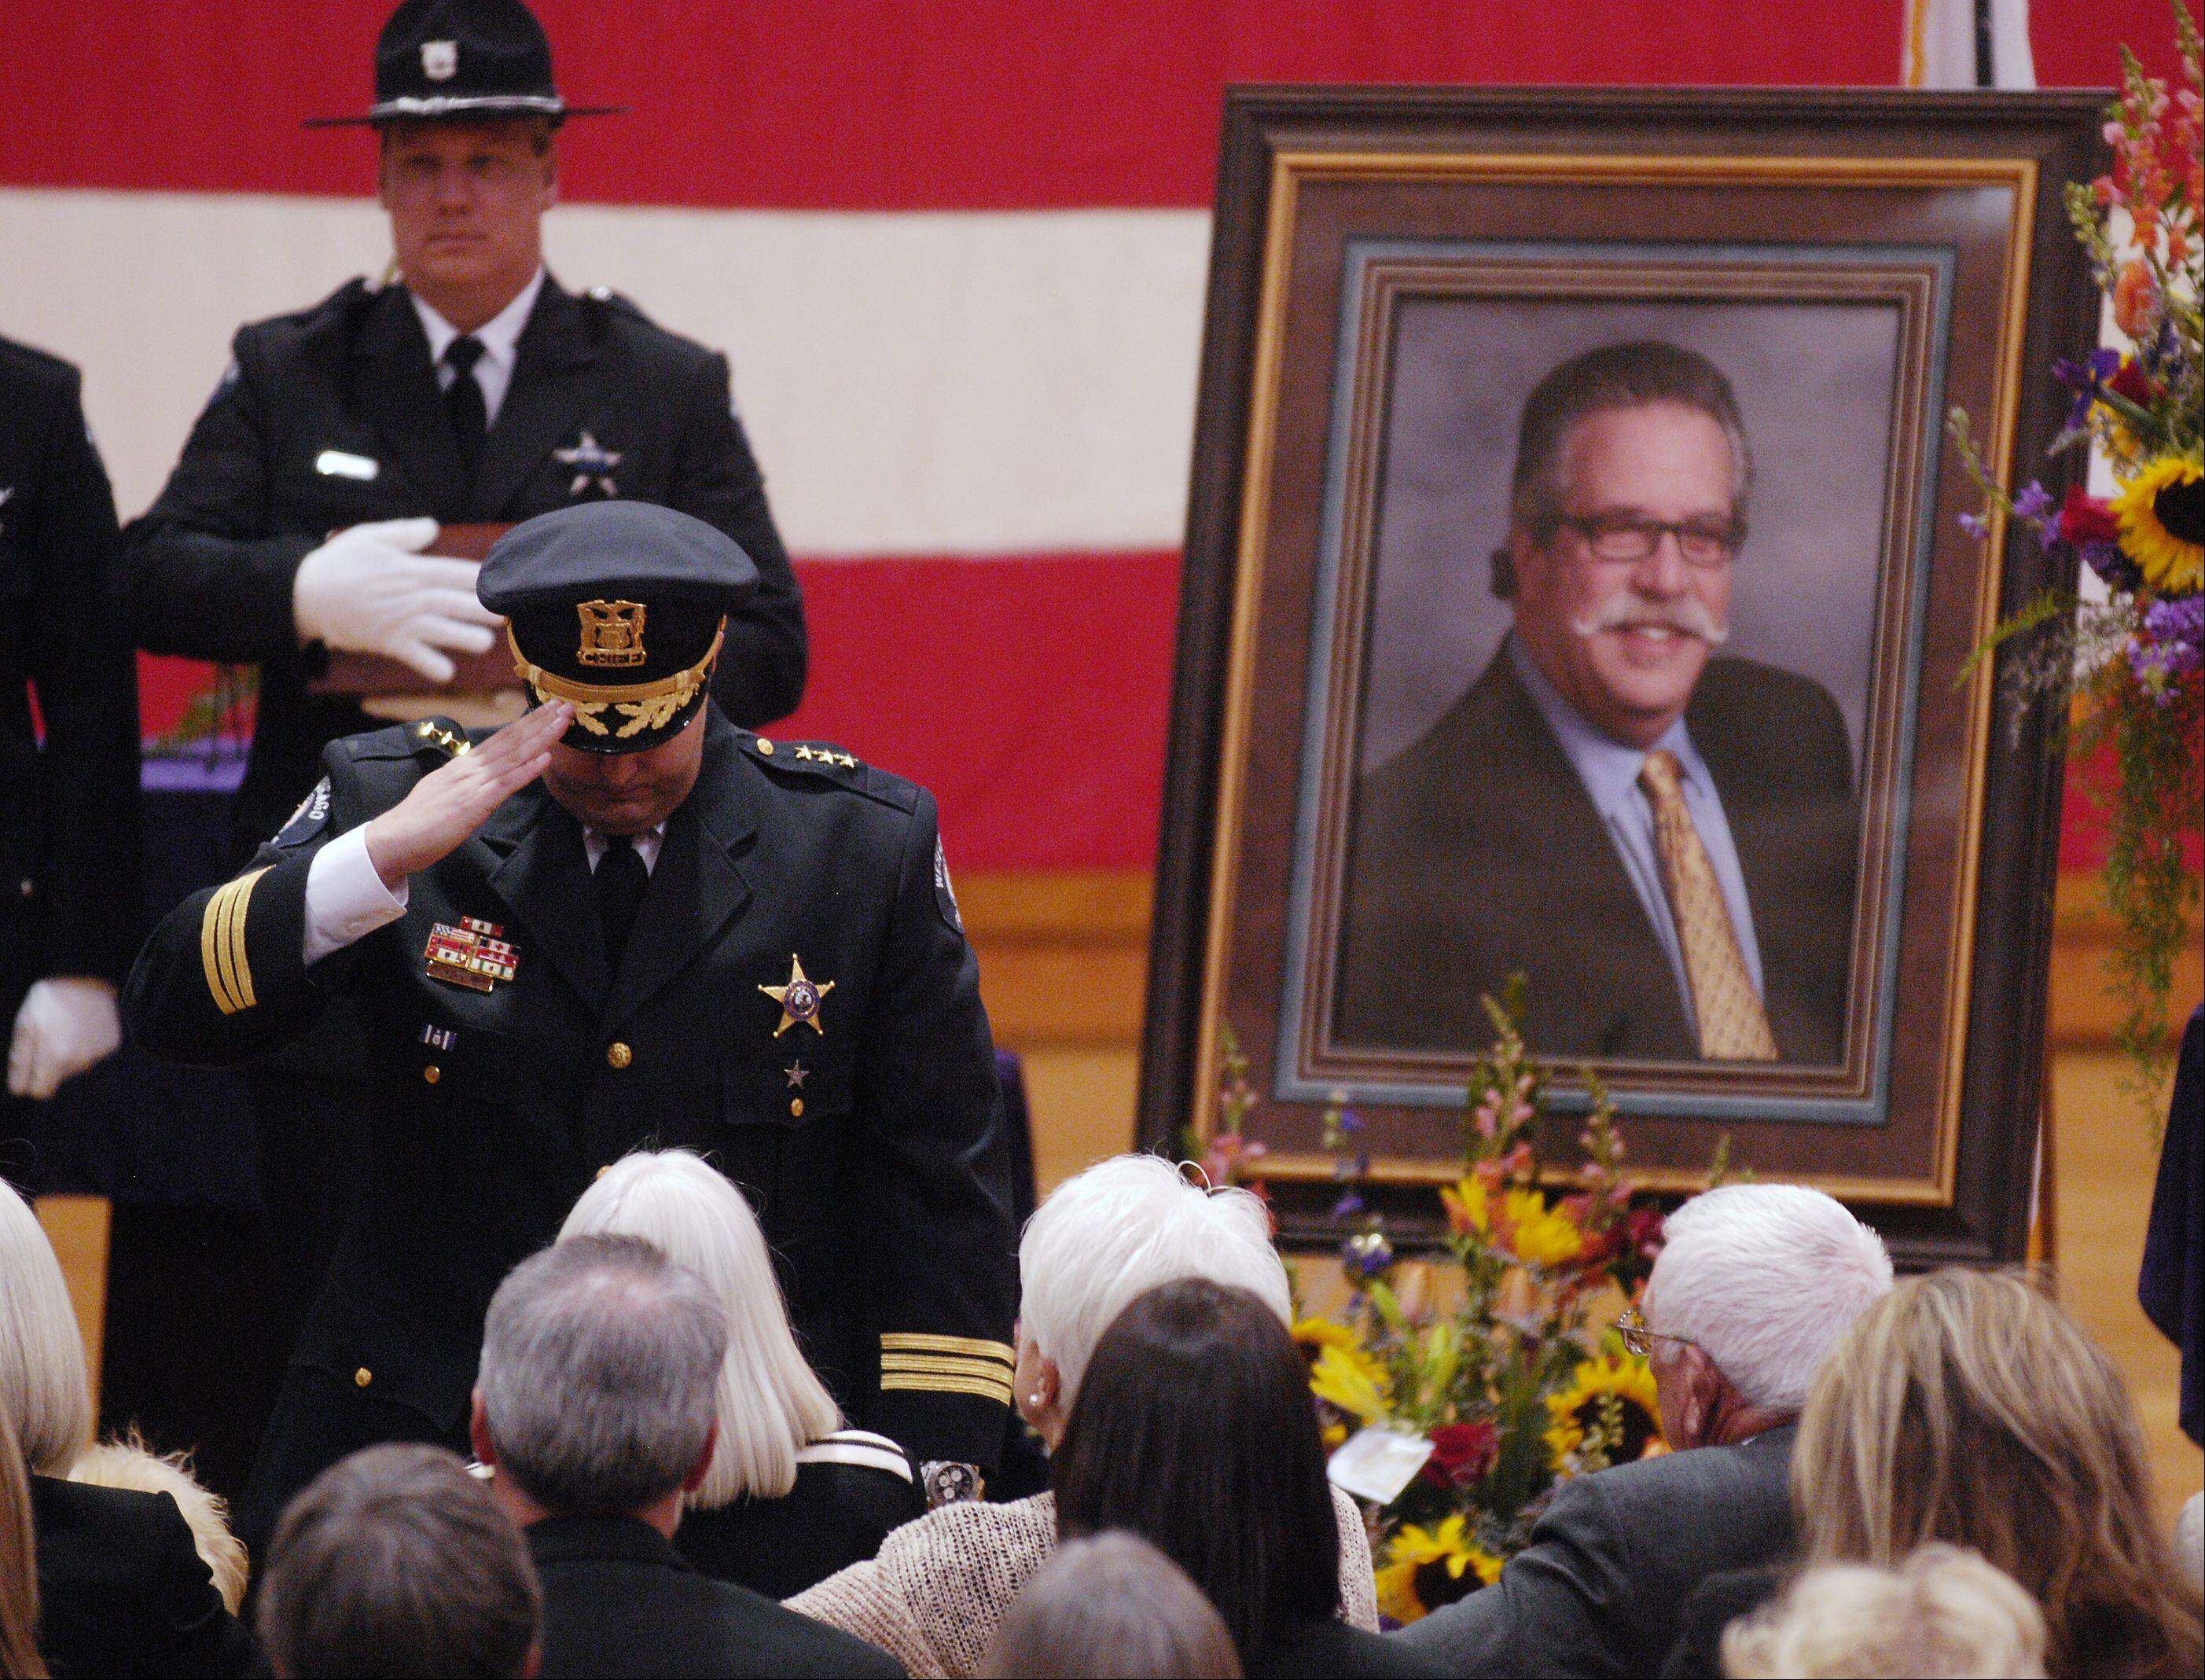 Family, friends pay tribute to W. Chicago mayor